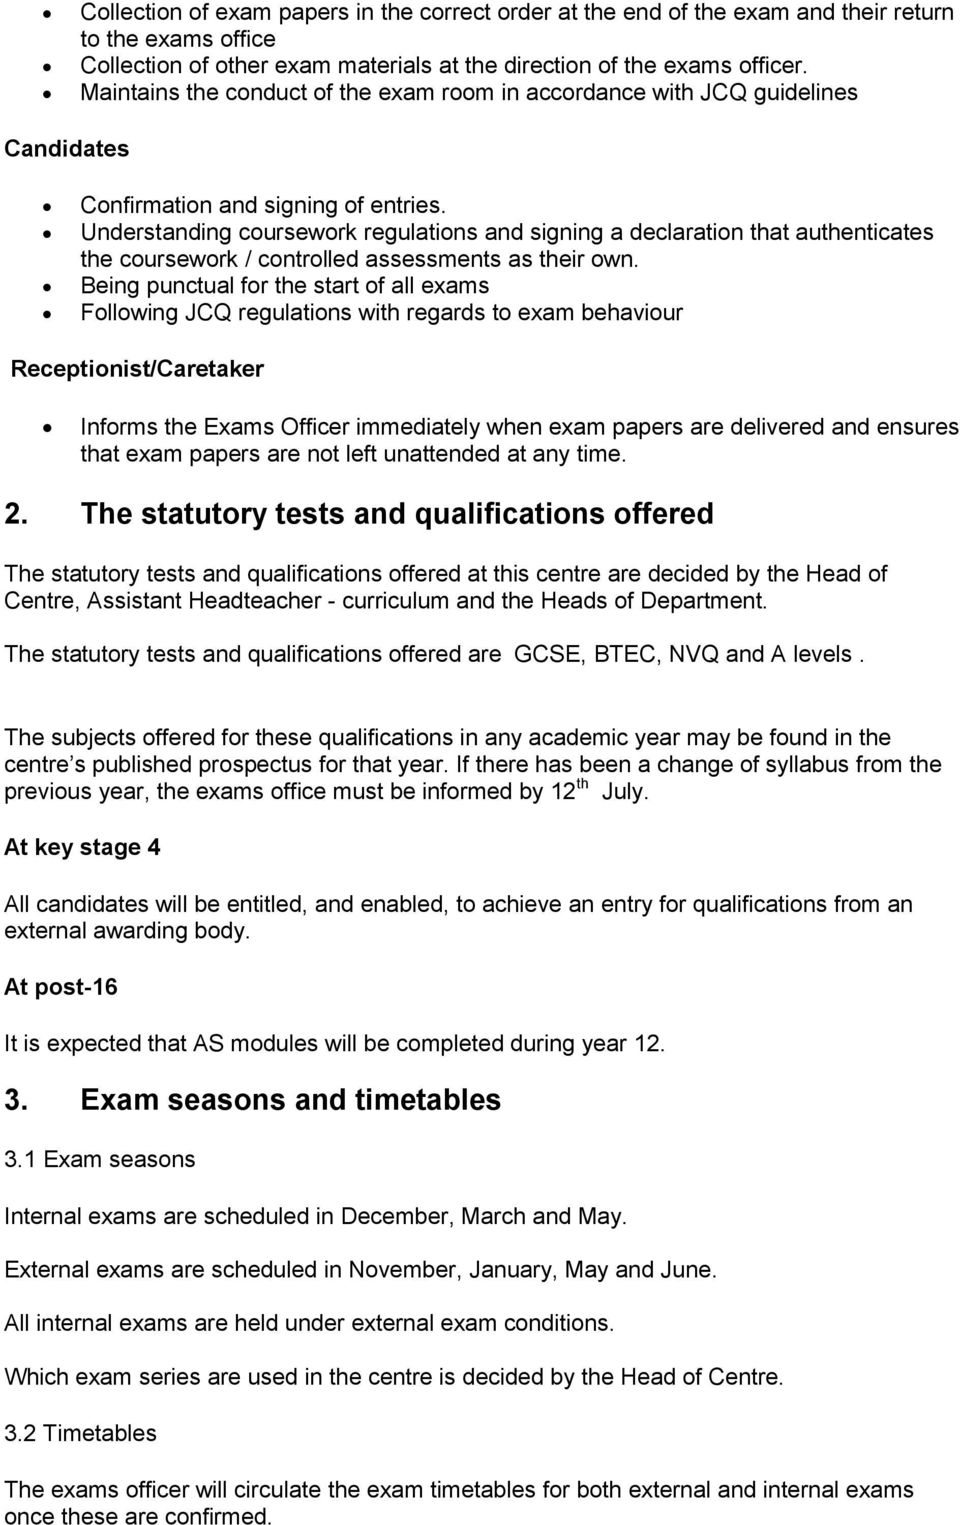 jcq coursework guidelines 2014